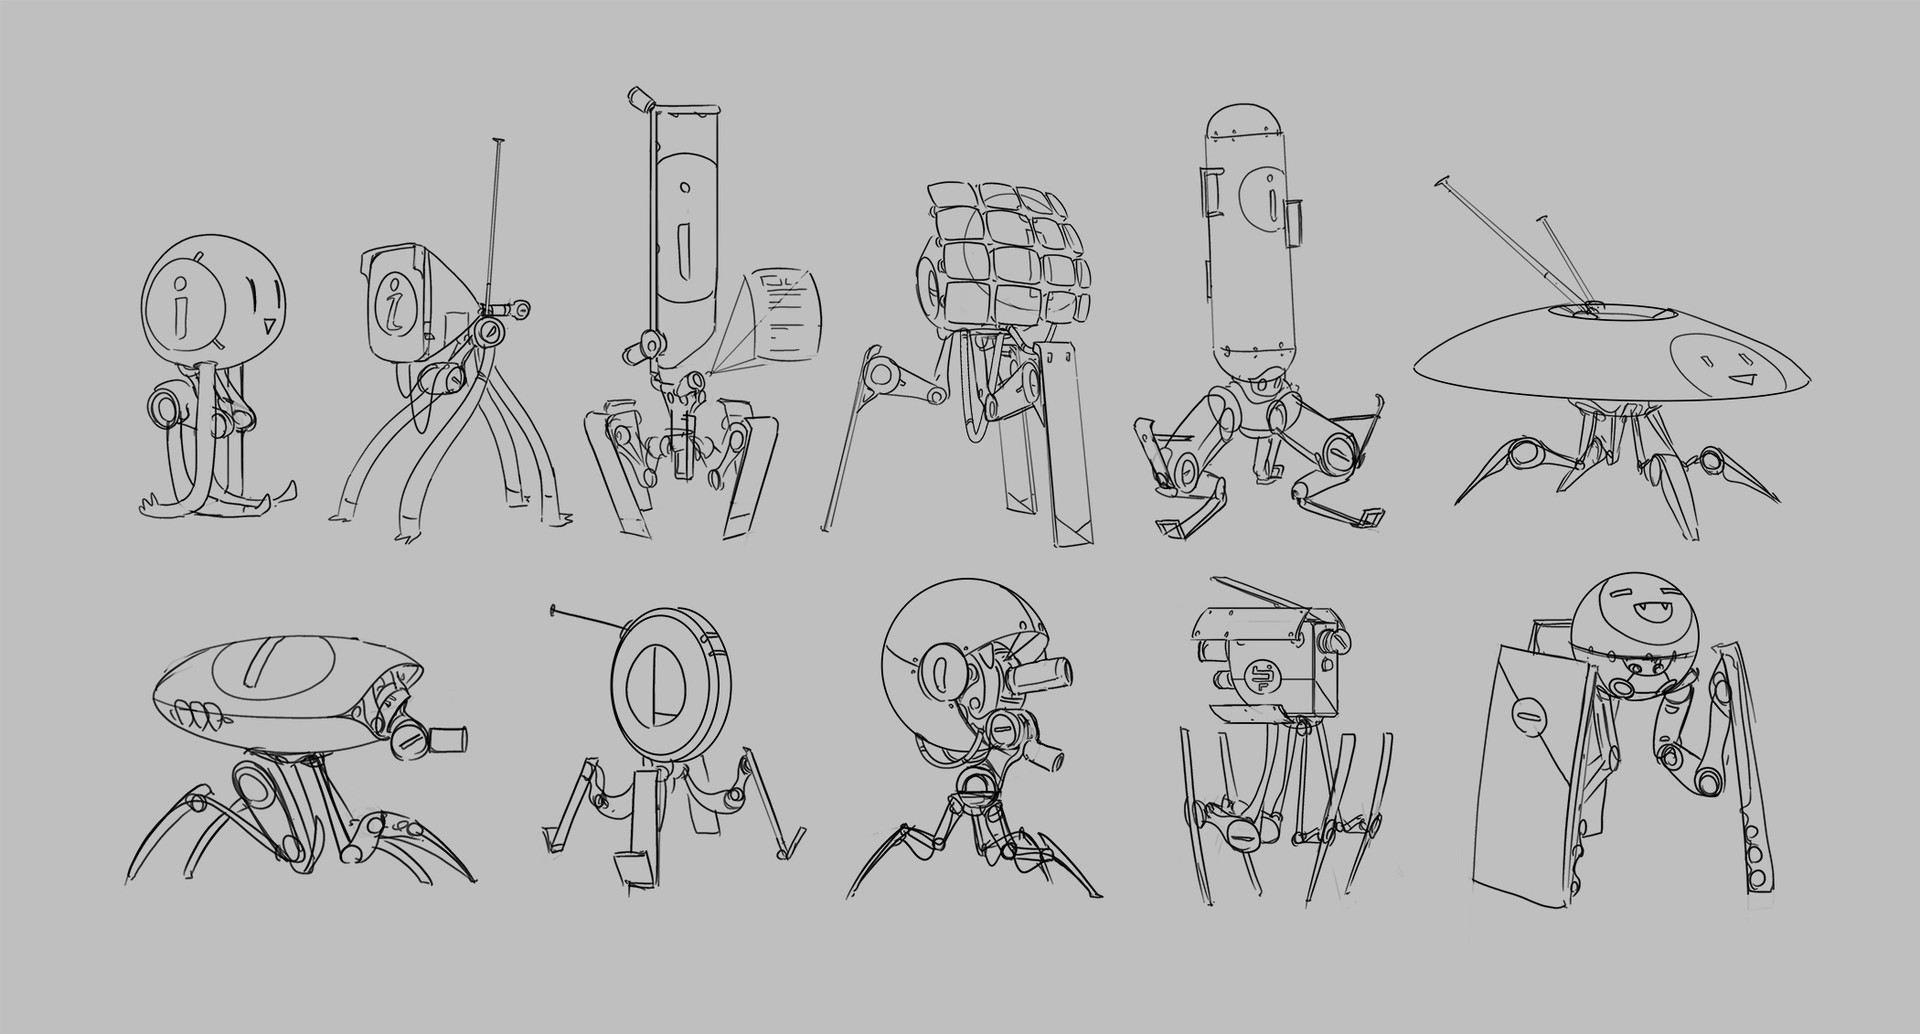 Samuel herb robot sketches